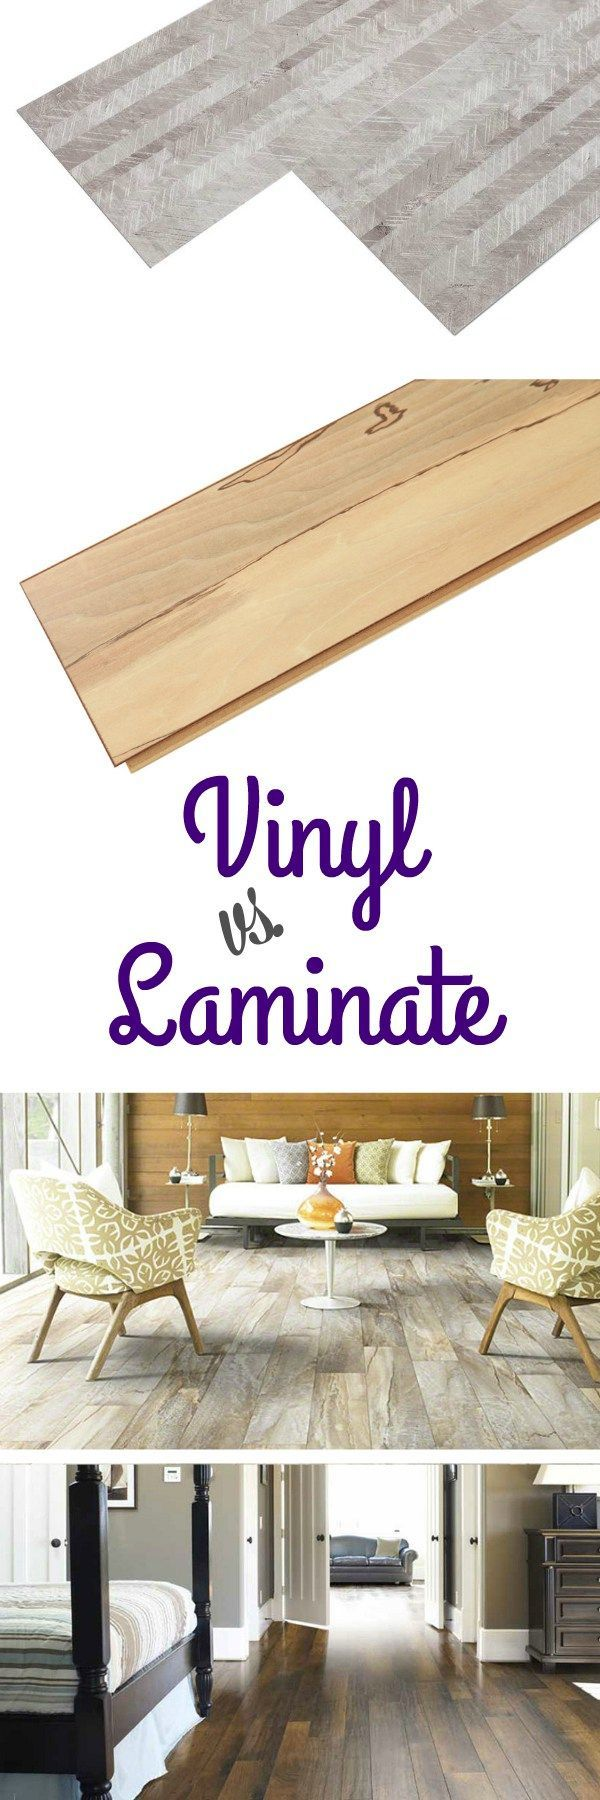 best 25 vinyl flooring for bathrooms ideas on pinterest vinyl flooring basement bathroom. Black Bedroom Furniture Sets. Home Design Ideas